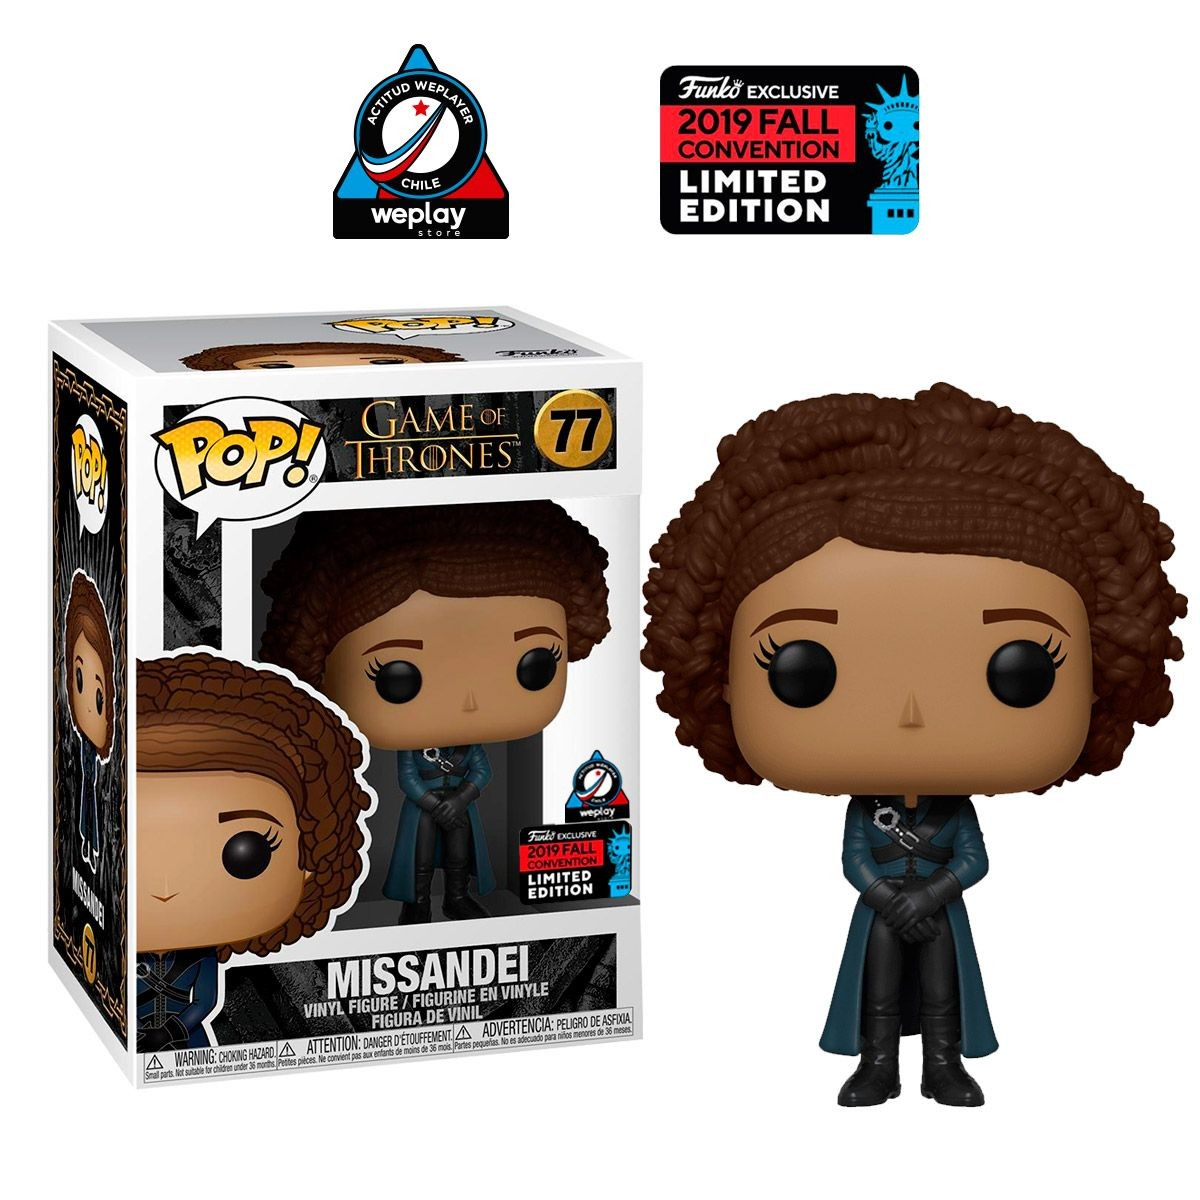 Фигурка Funko POP! Vinyl: Миссандея (Missandei (NYCC 2019 Limited Edition Exclusive)) Престолов (Game of Thrones) (40353) 9,5 см